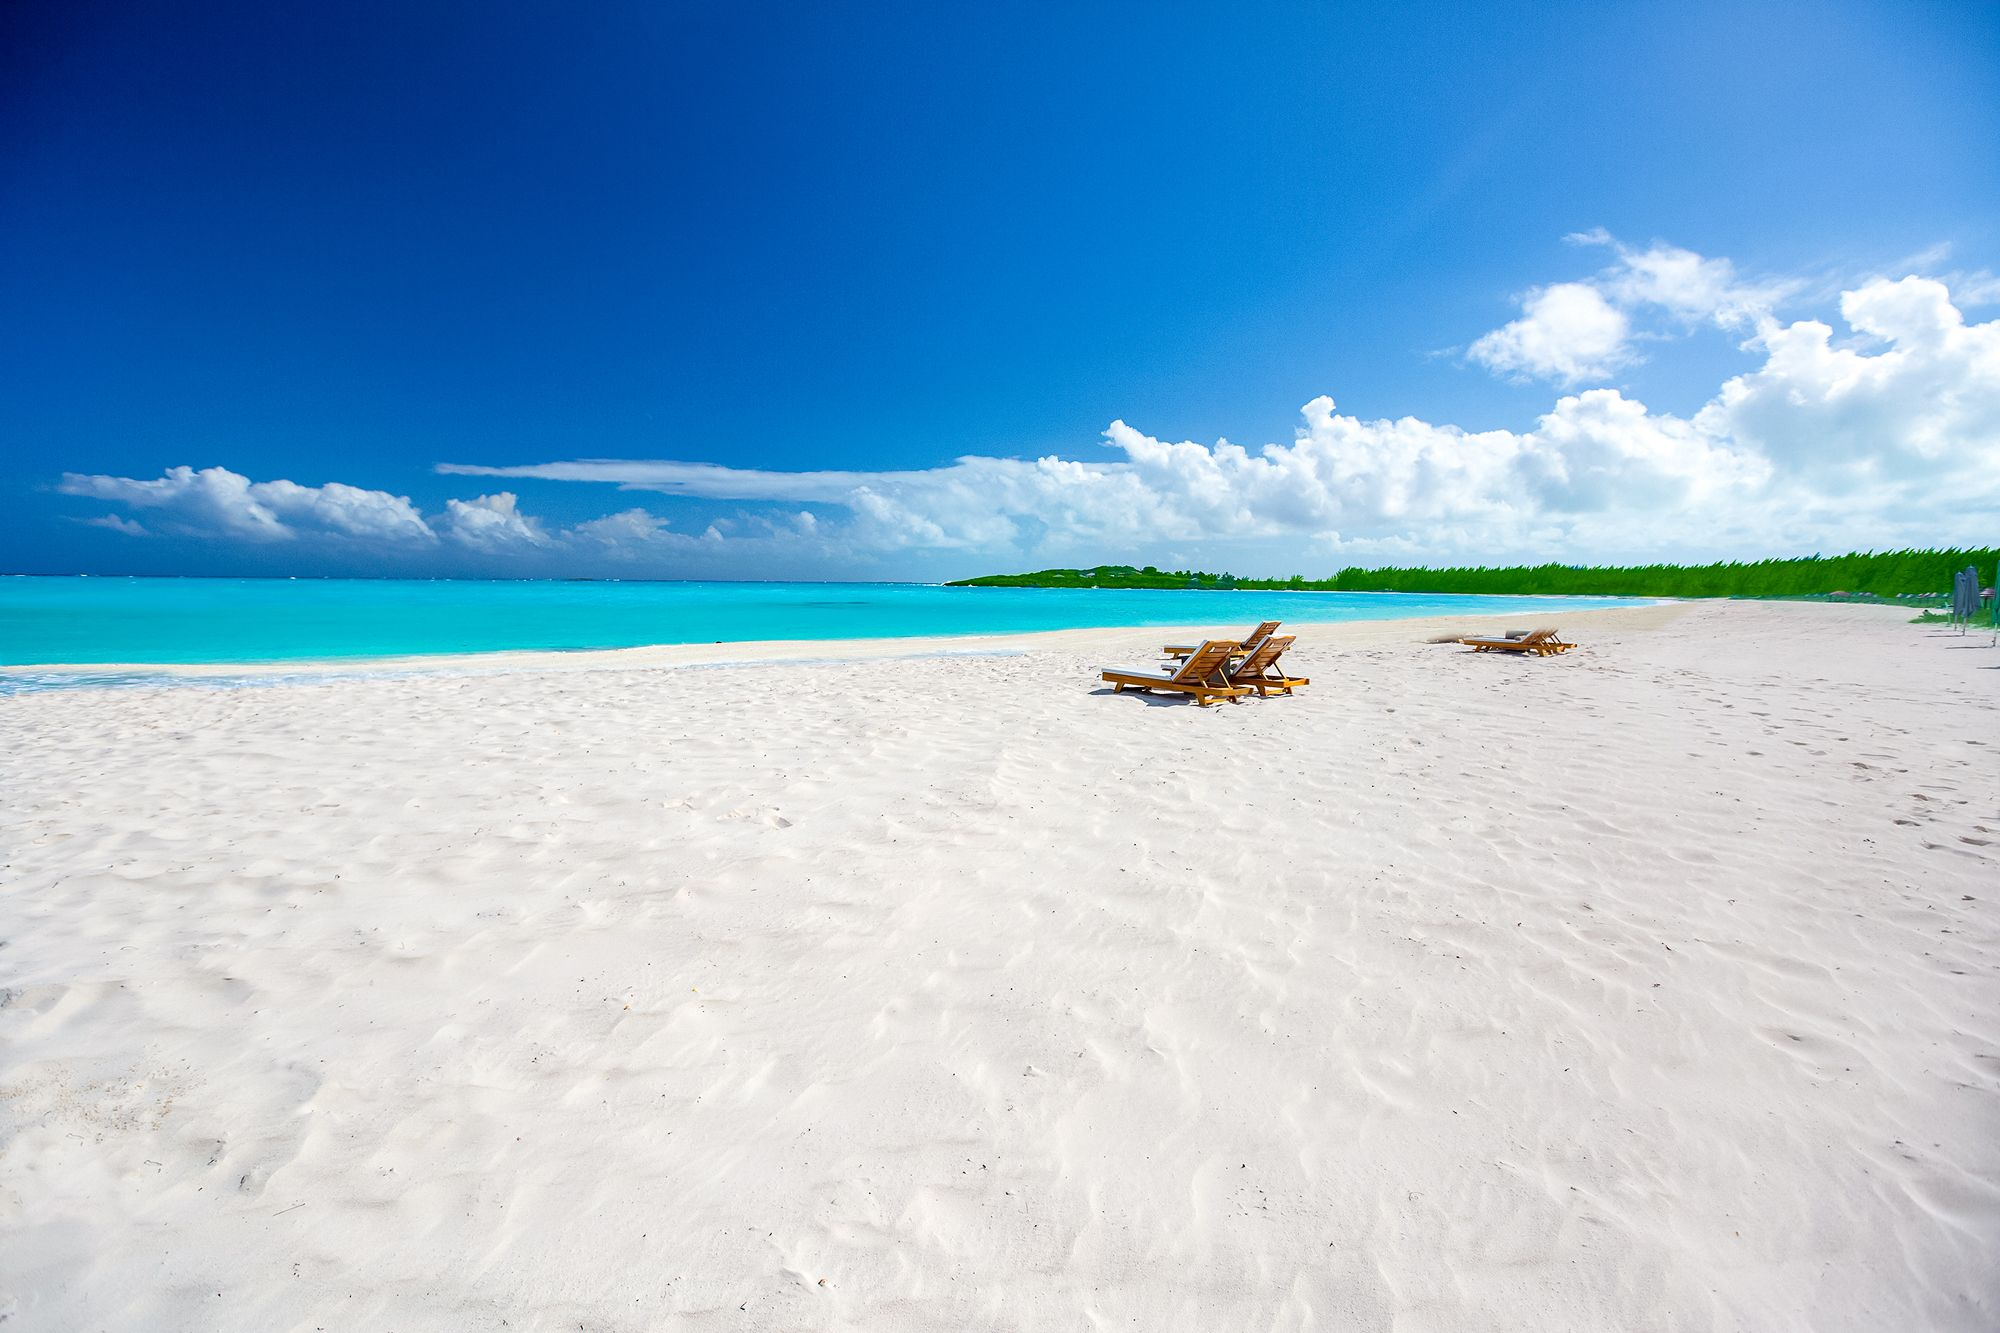 Sandals Emerald Bay White Sand Beach